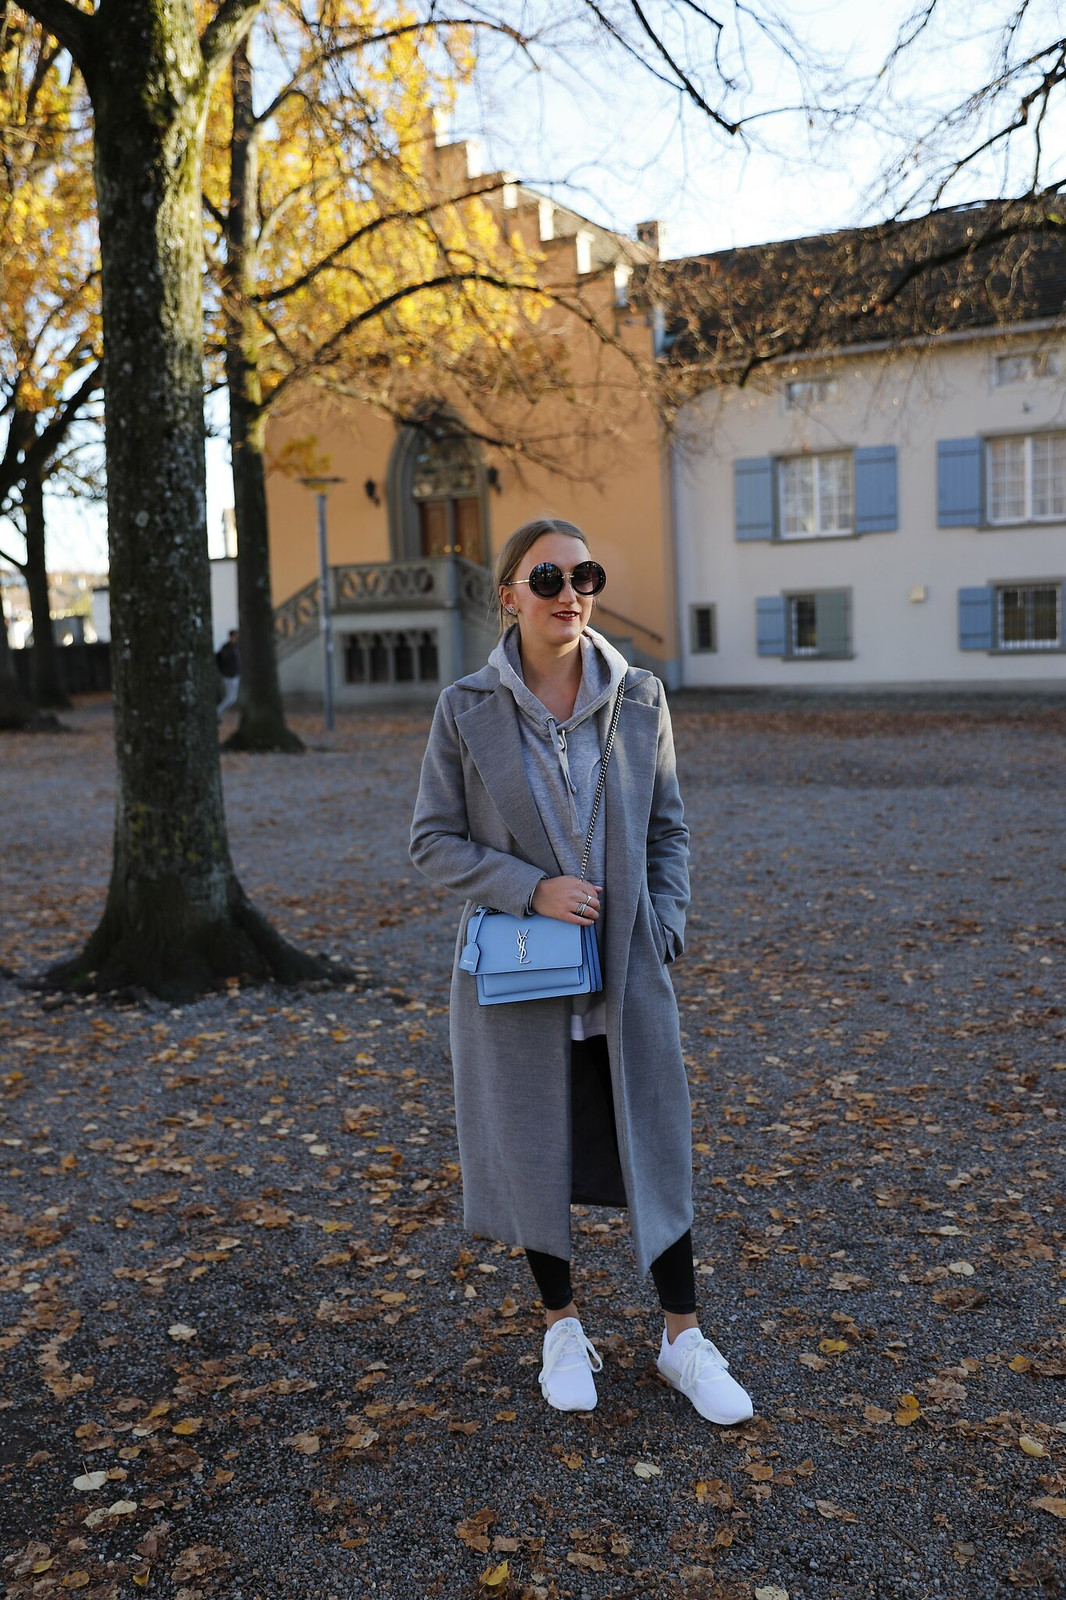 ysl-bag-and-sneakers-whole-outfit-front-wiebkembg